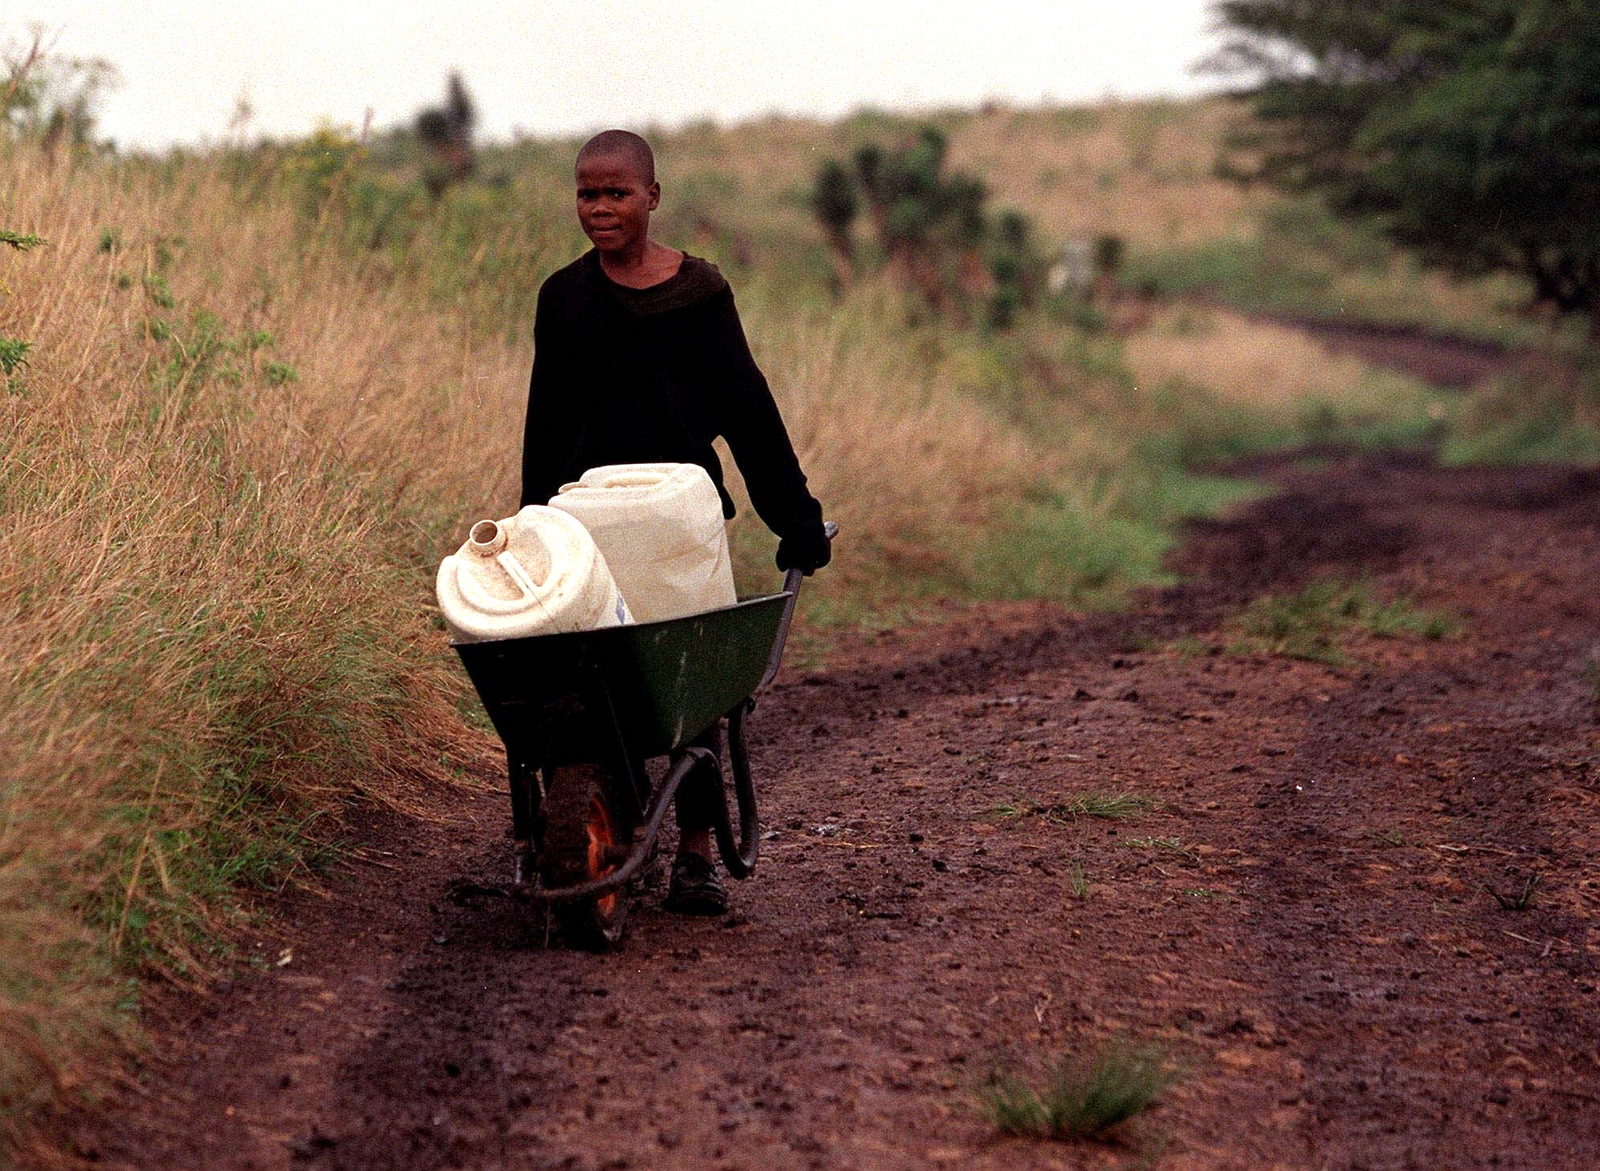 Phakamani Mpanza,14, delivers water to his home from a roadside borehole about 3 kilometres (1.8 miles) away near Empangeni (about 160 kilometres (99 miles) north of Durban, Oct. 27 2000. (AP/ Cobus Bodenstein)